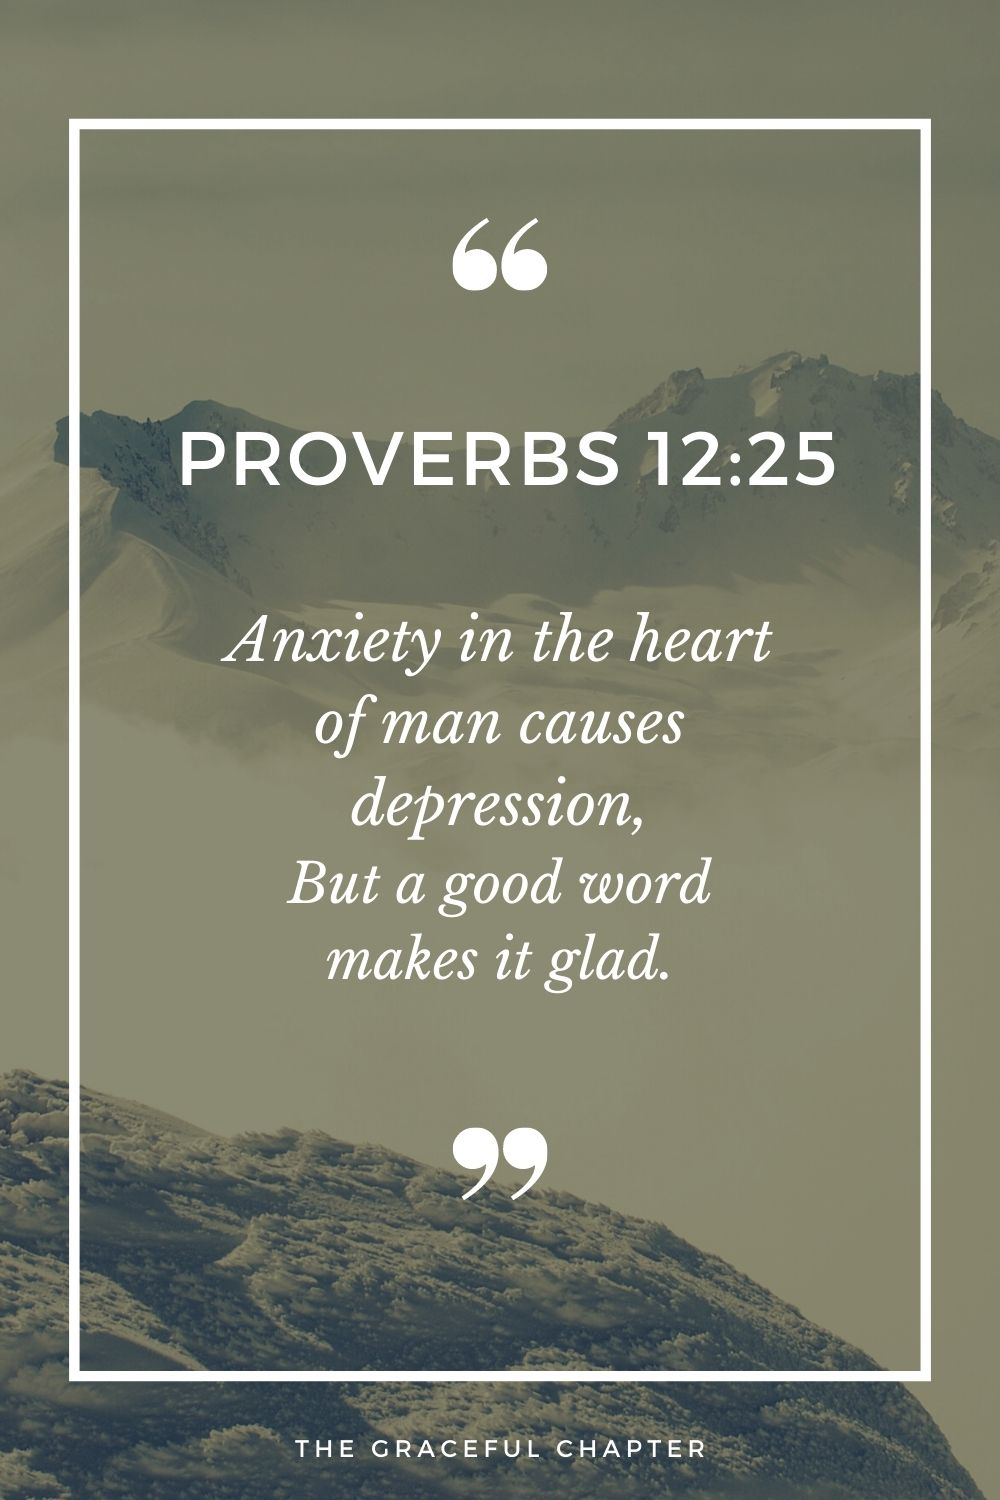 Anxiety in the heart of man causes depression, But a good word makes it glad. Proverbs 12:25